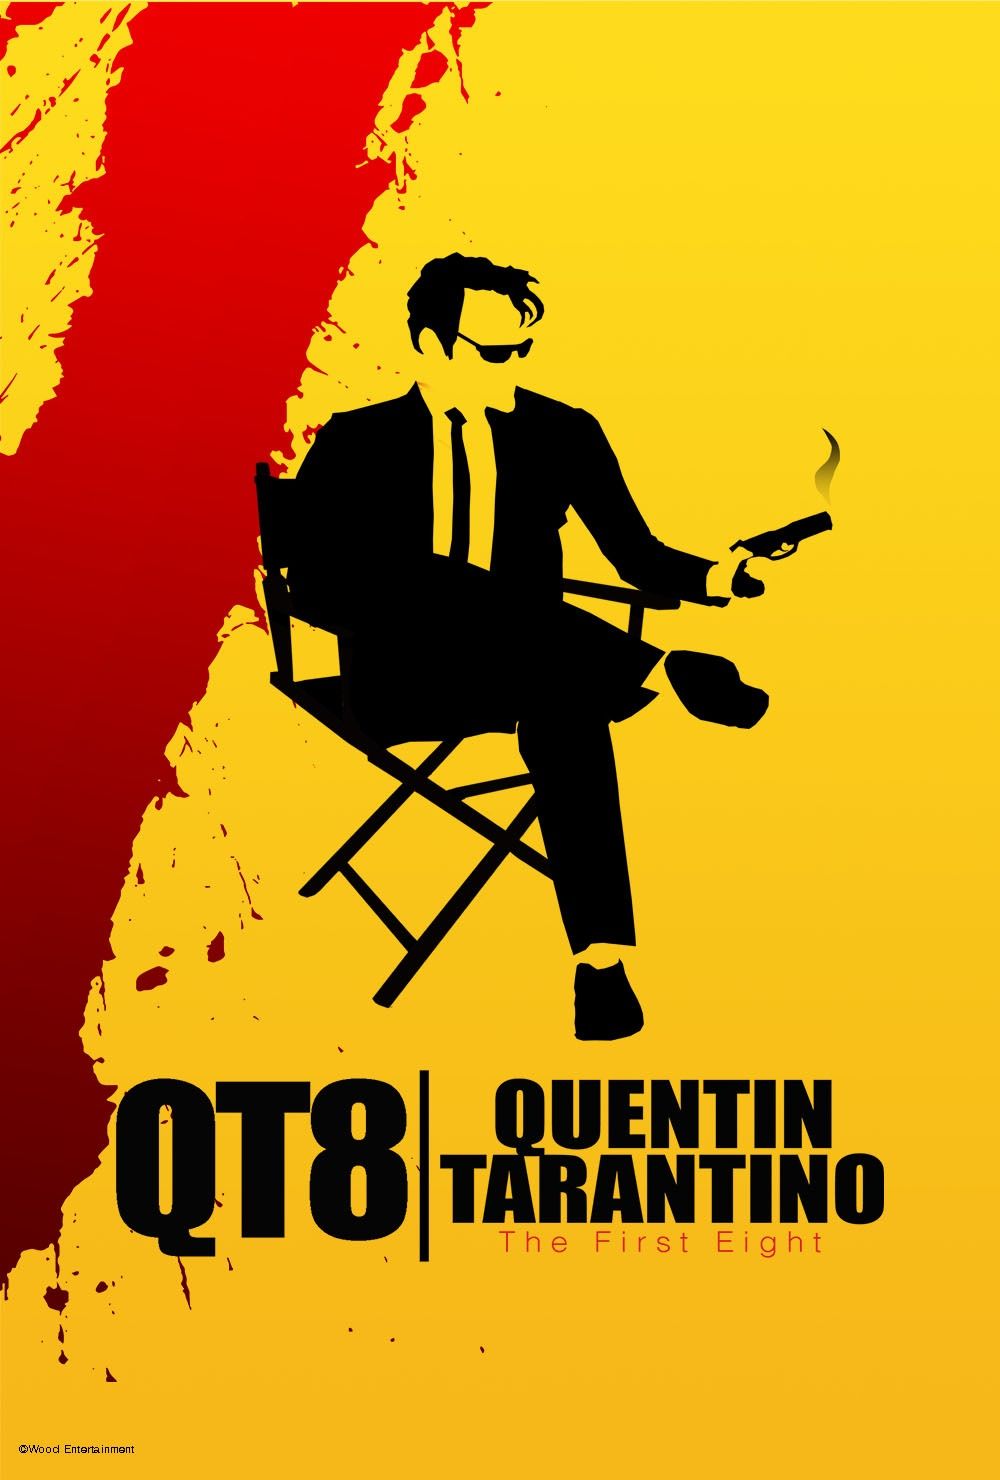 QT8: Quentin Tarantino, The First Eight